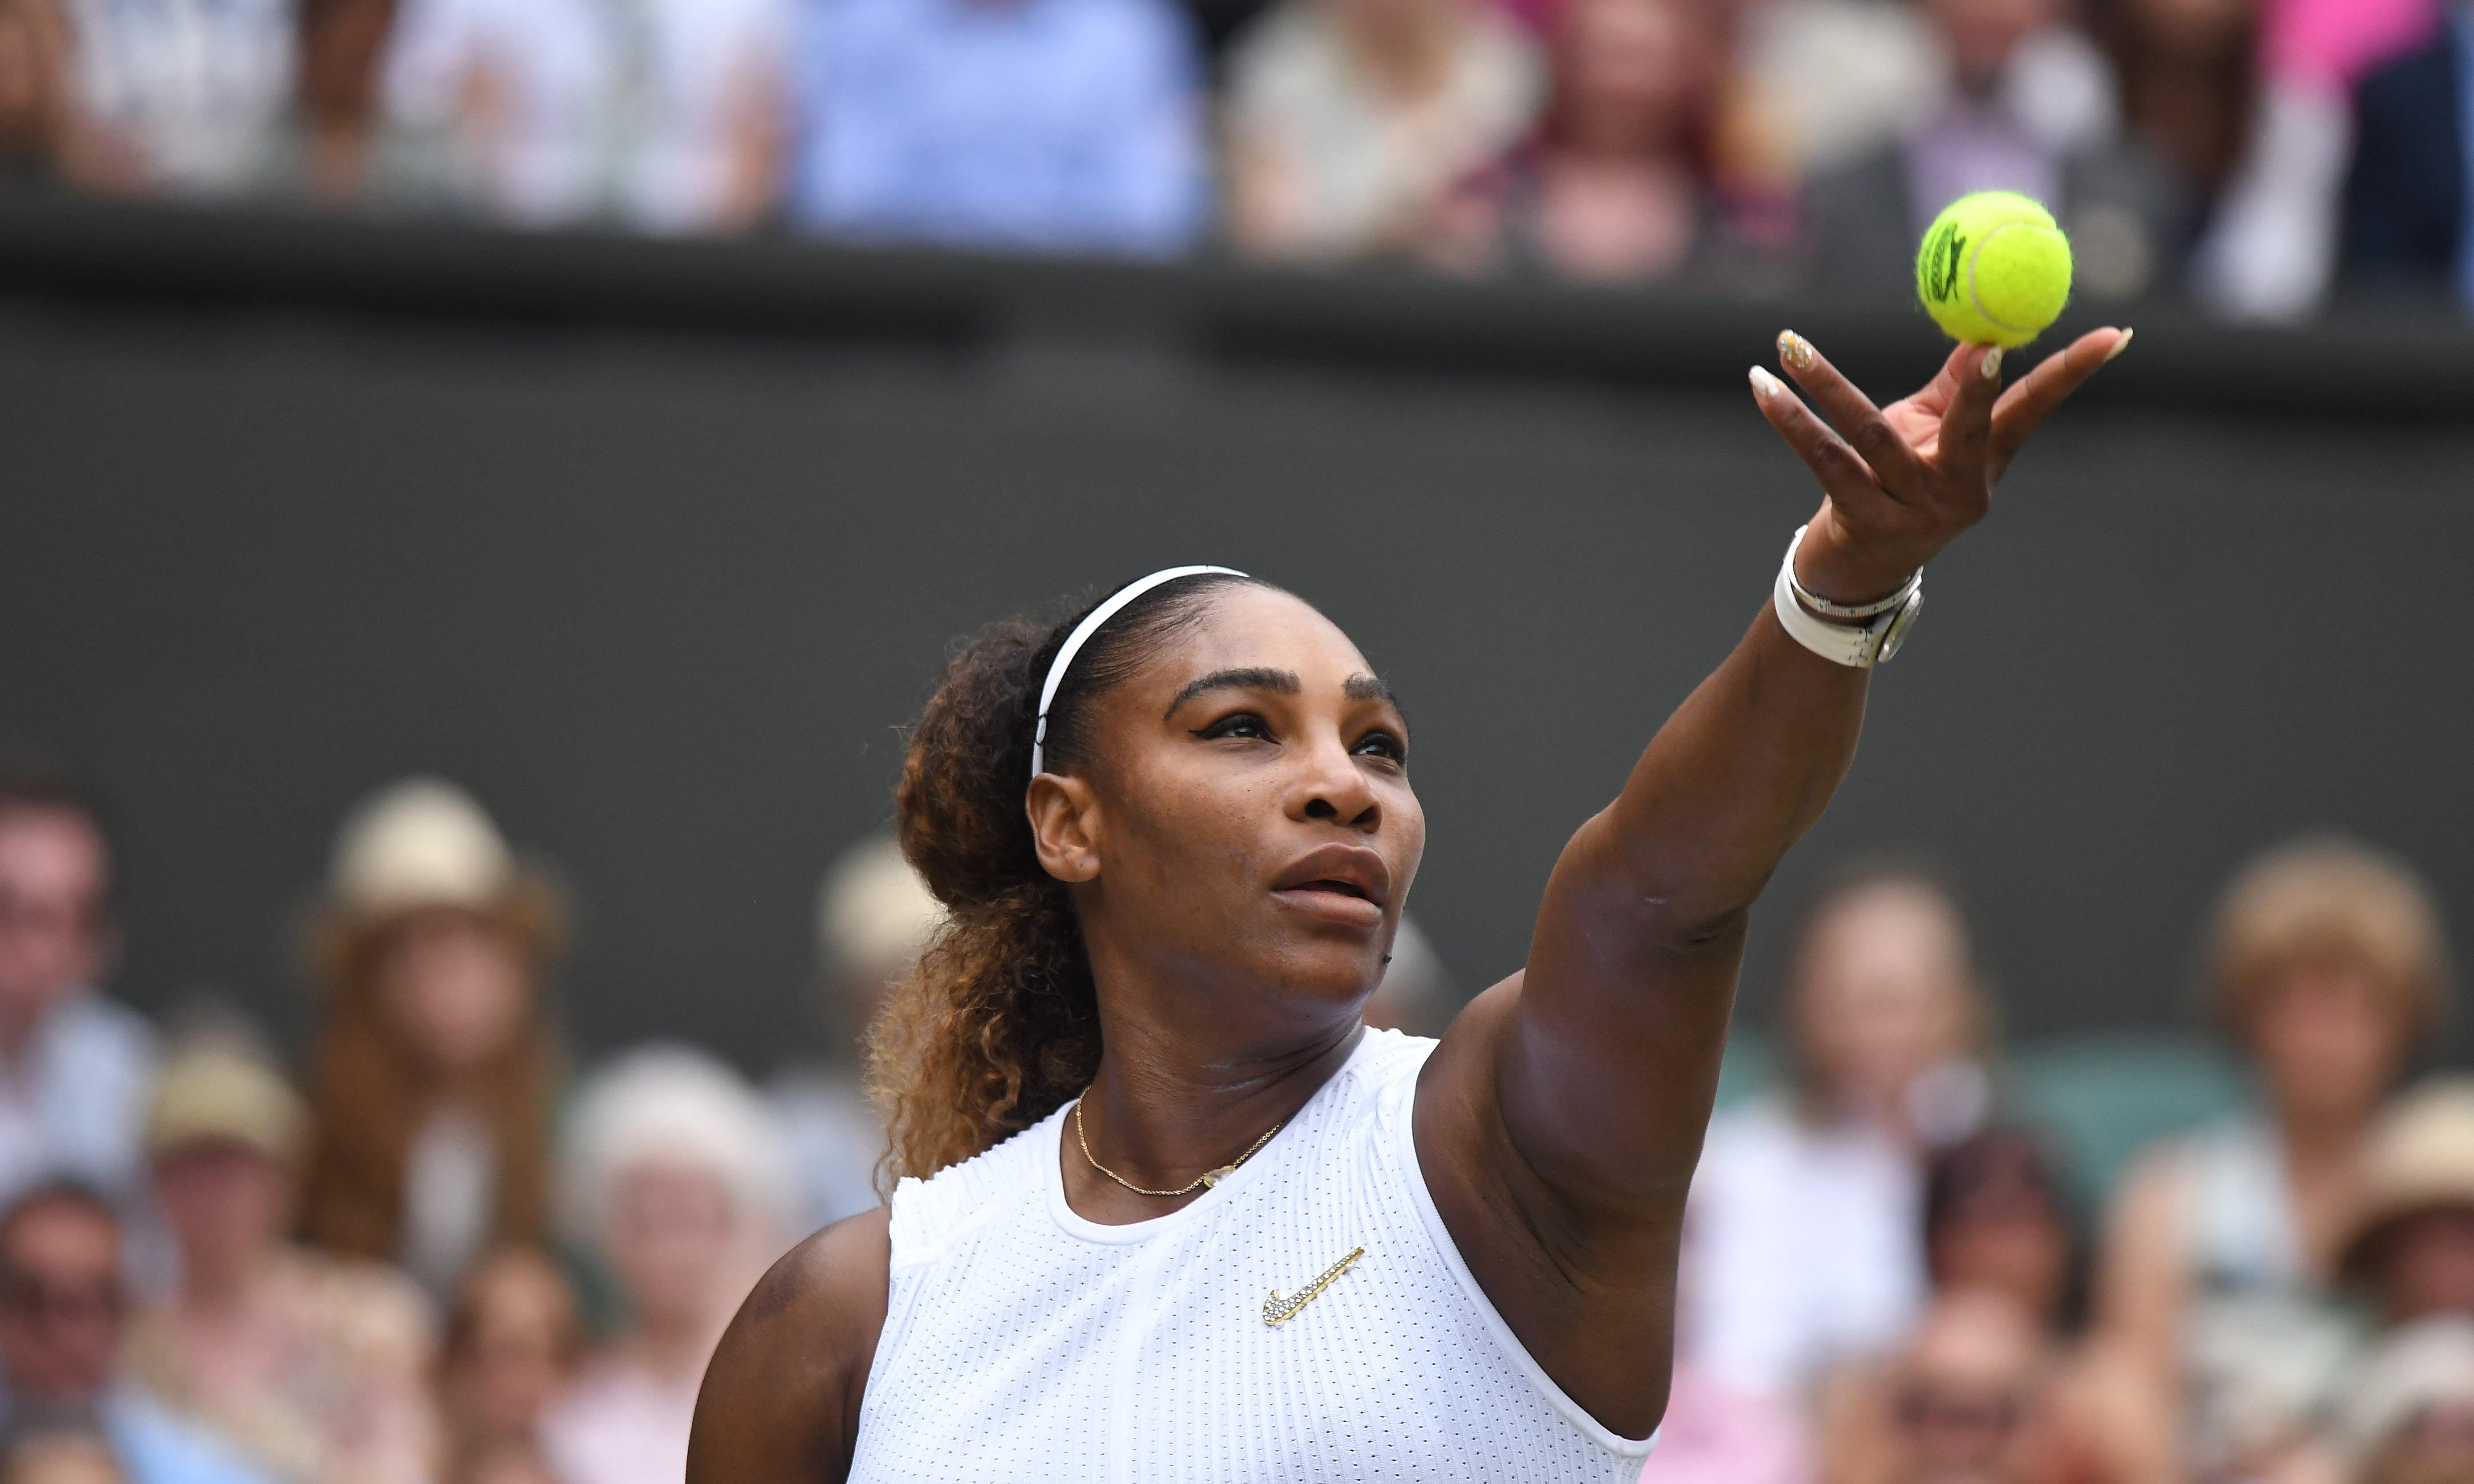 Why do so many men think they could win a point off Serena Williams?